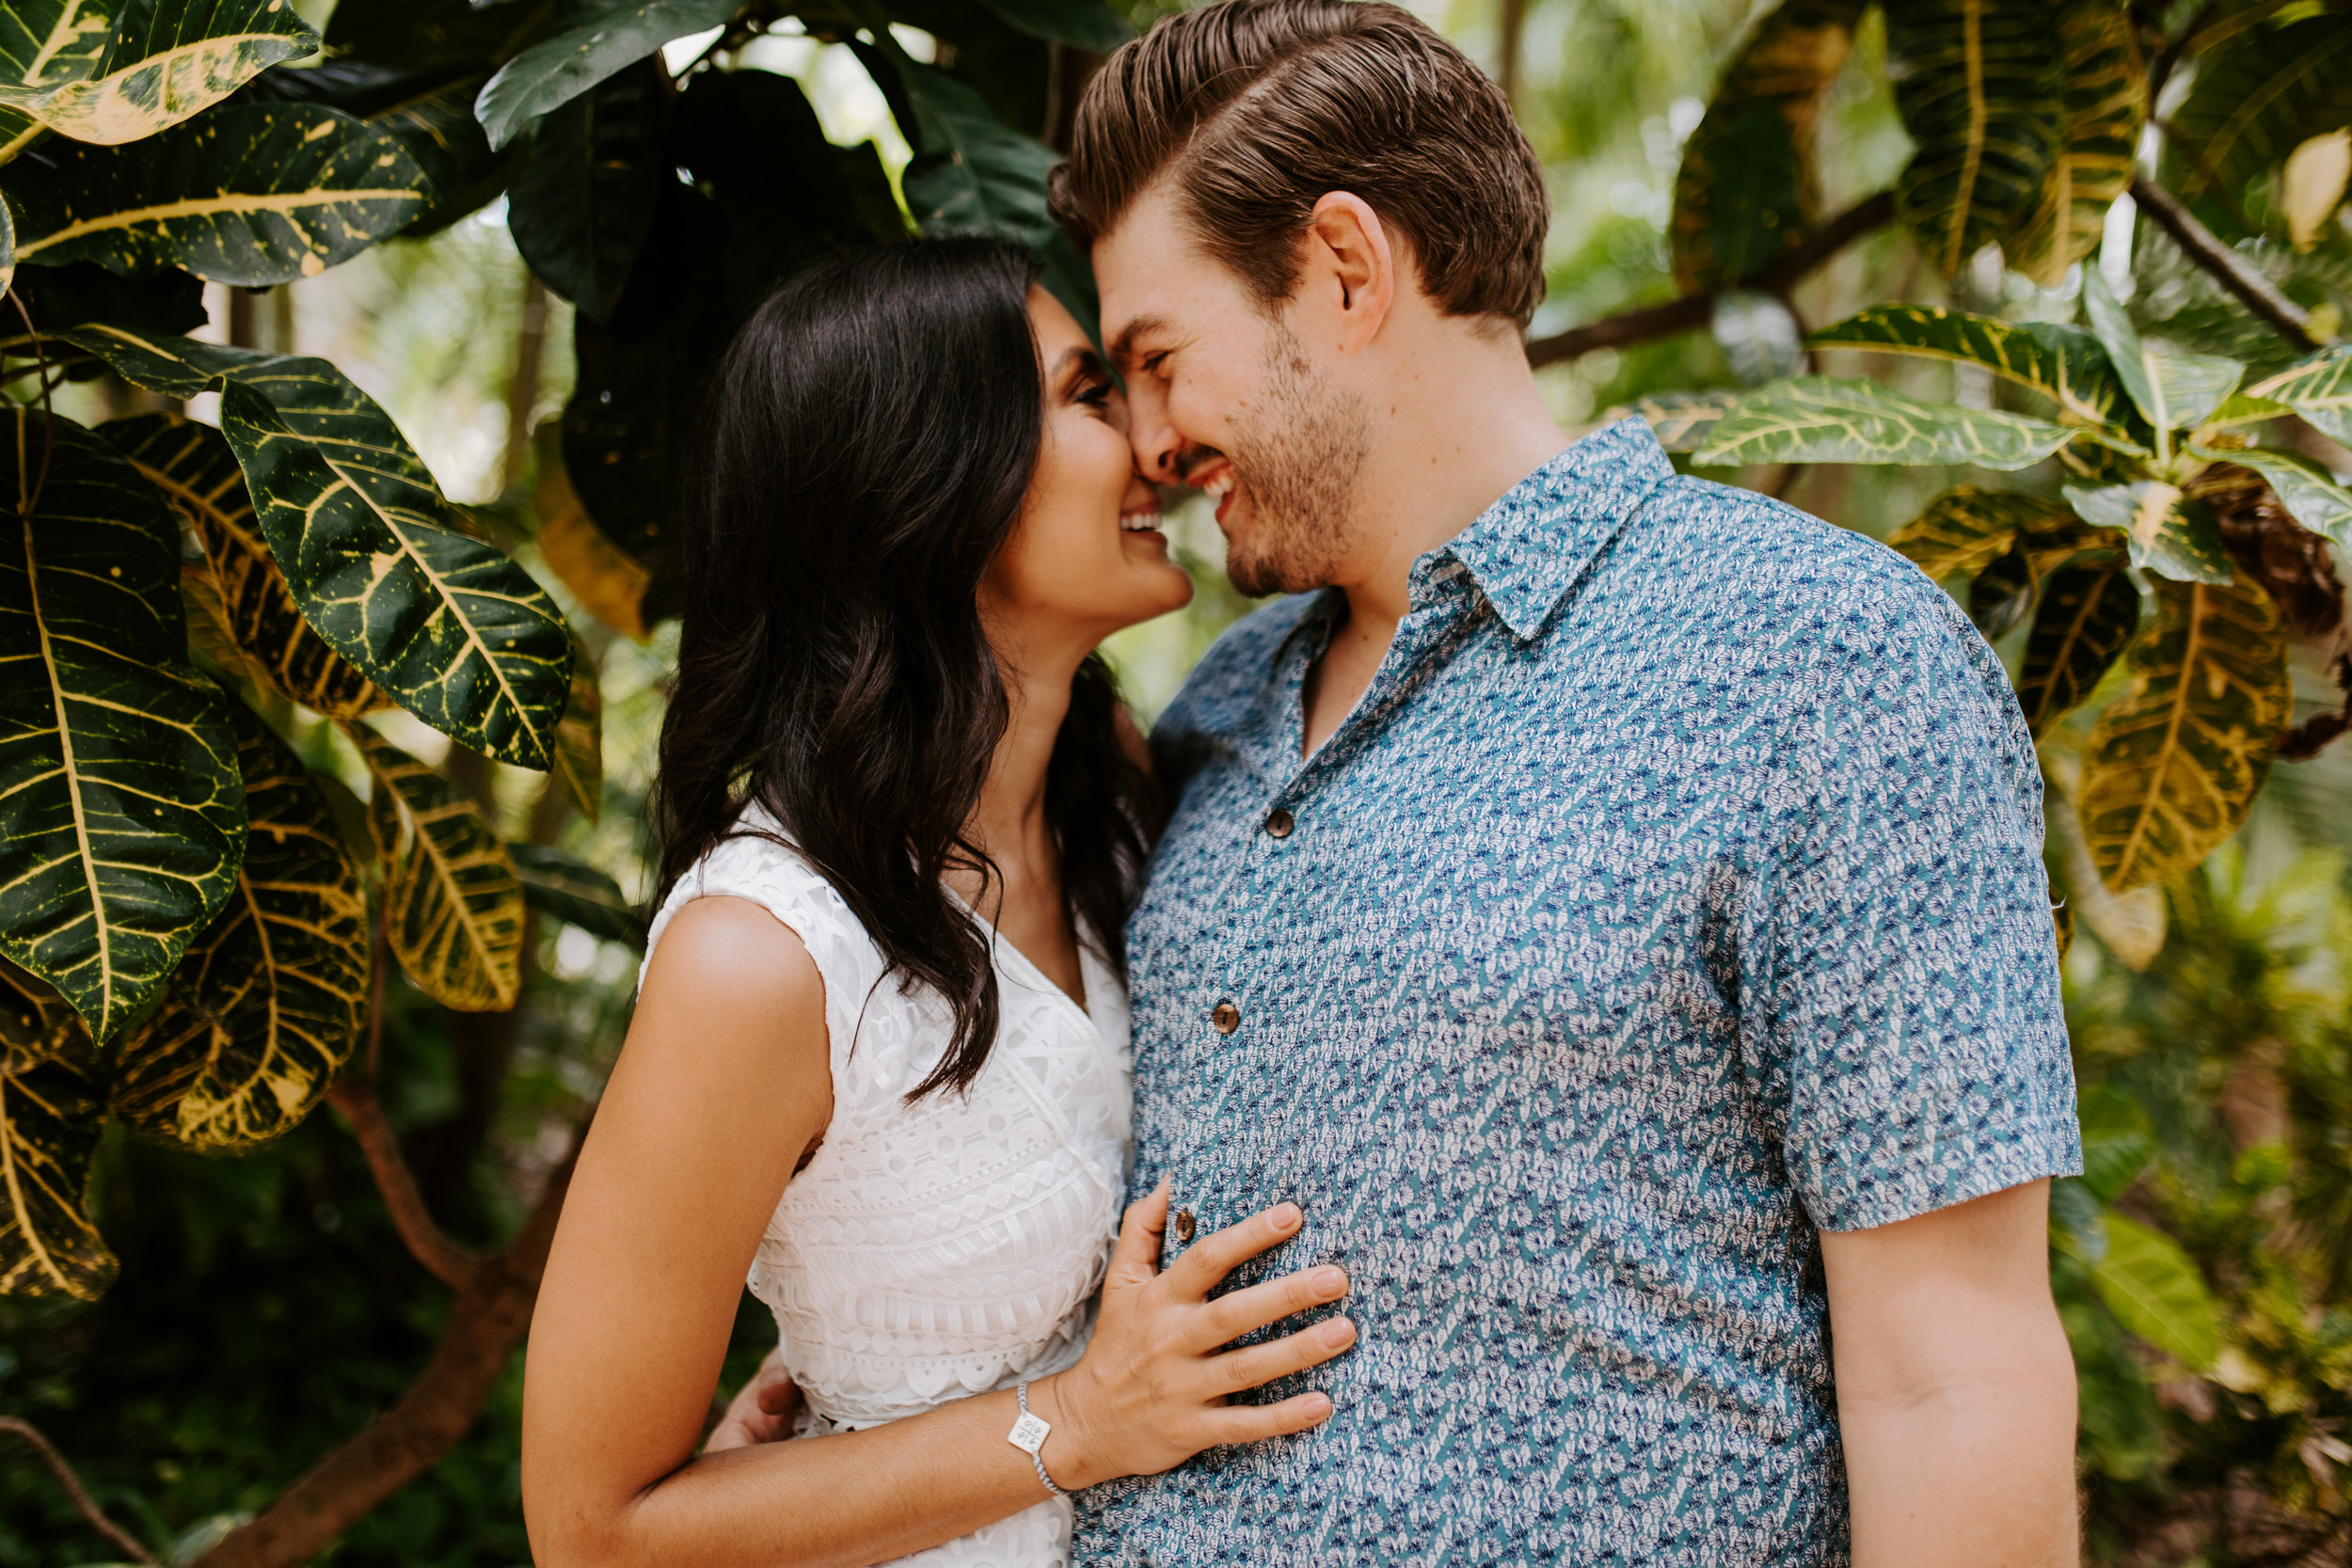 Sunken_Gardens-St_Pete-Allie_+_Eric-Engagement-Native_Expressions-26.jpg